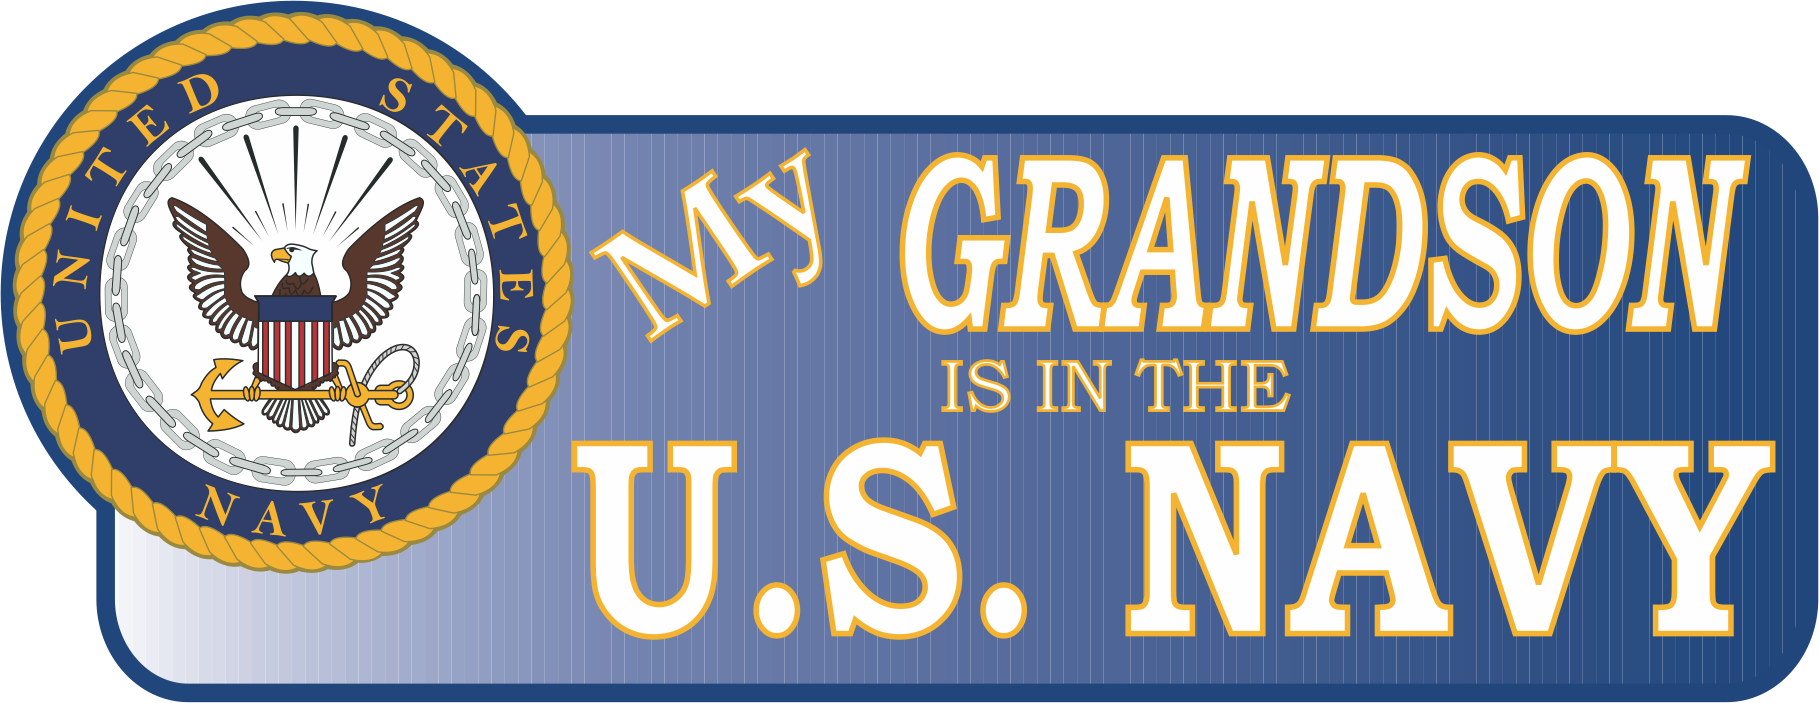 My Grandson Is In The Navy Vinyl Transfer Bumper Sticker